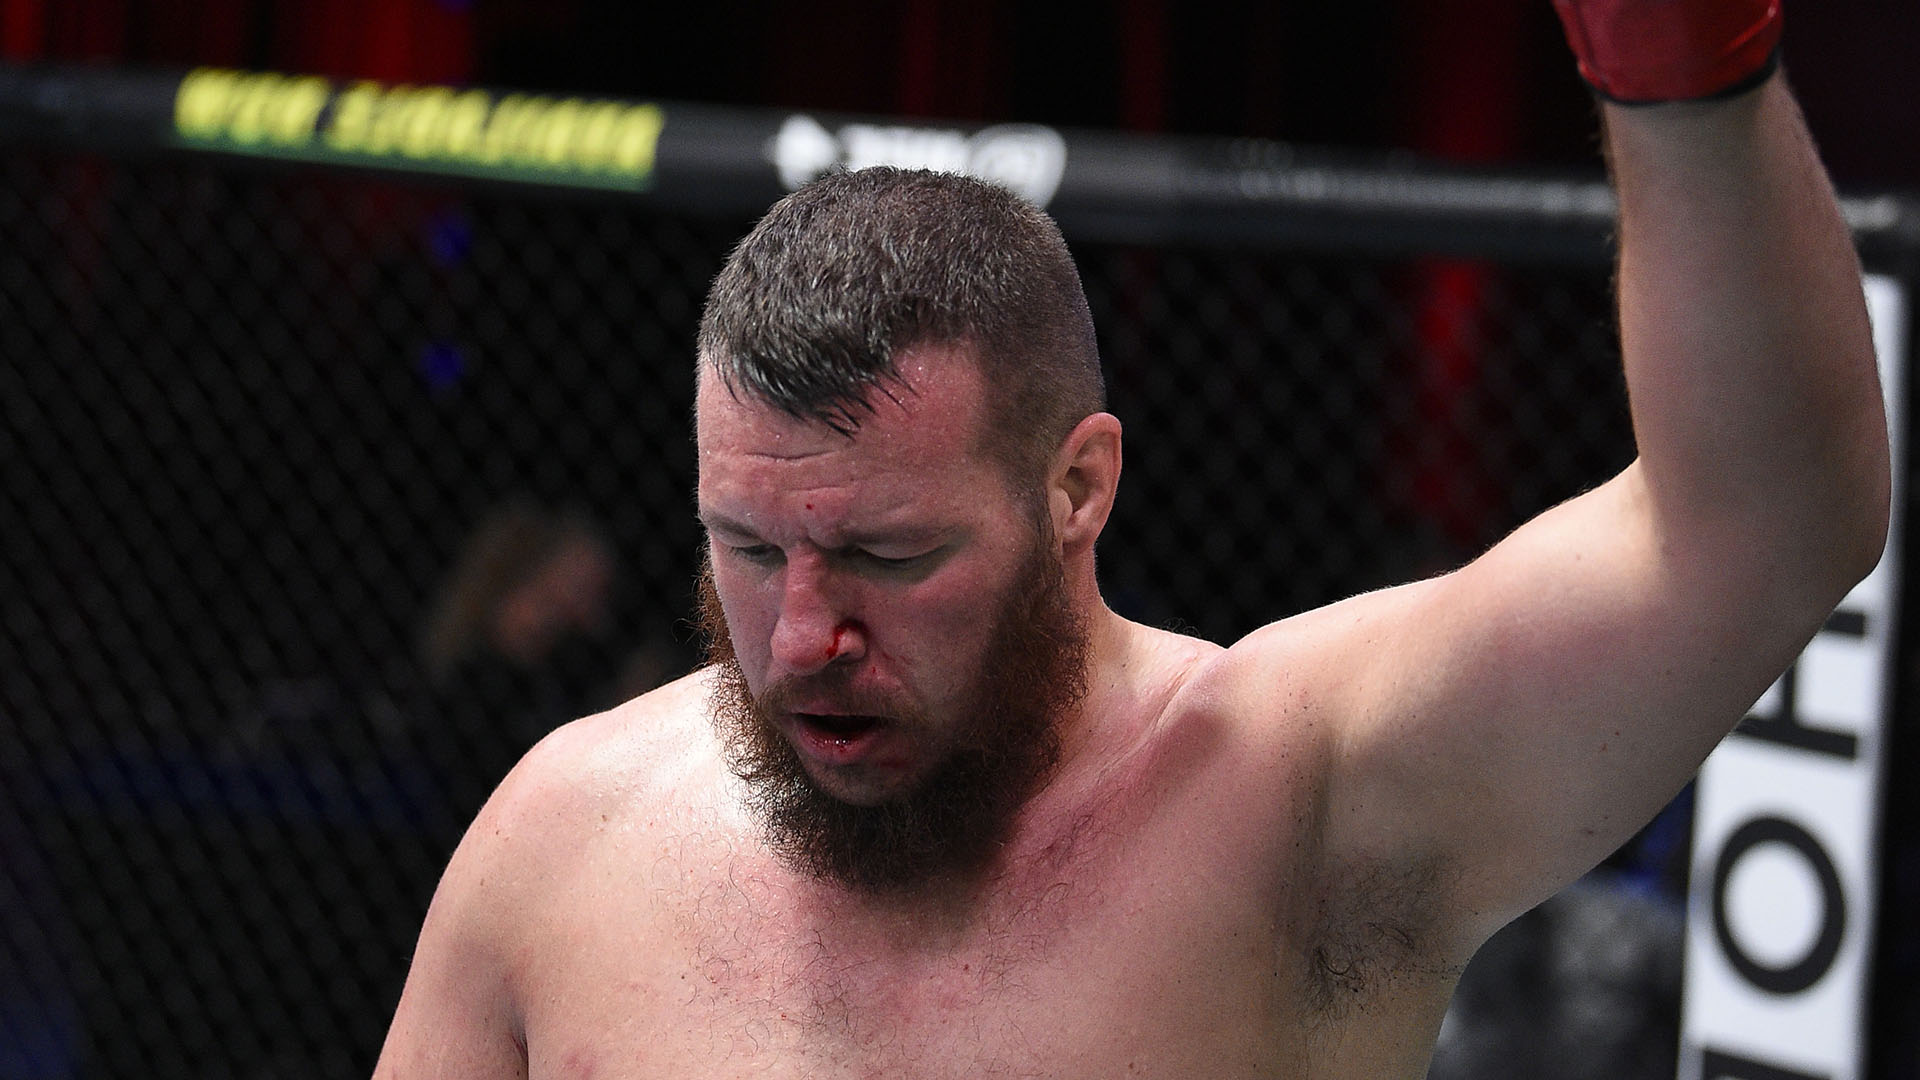 Josh Parisian reacts after his victory over Chad Johnson in a heavyweight bout during week three of Dana White's Contender Series Season 4 at UFC APEX on August 18, 2020 in Las Vegas, Nevada. (Photo by Chris Unger/DWCS LLC/Zuffa LLC)